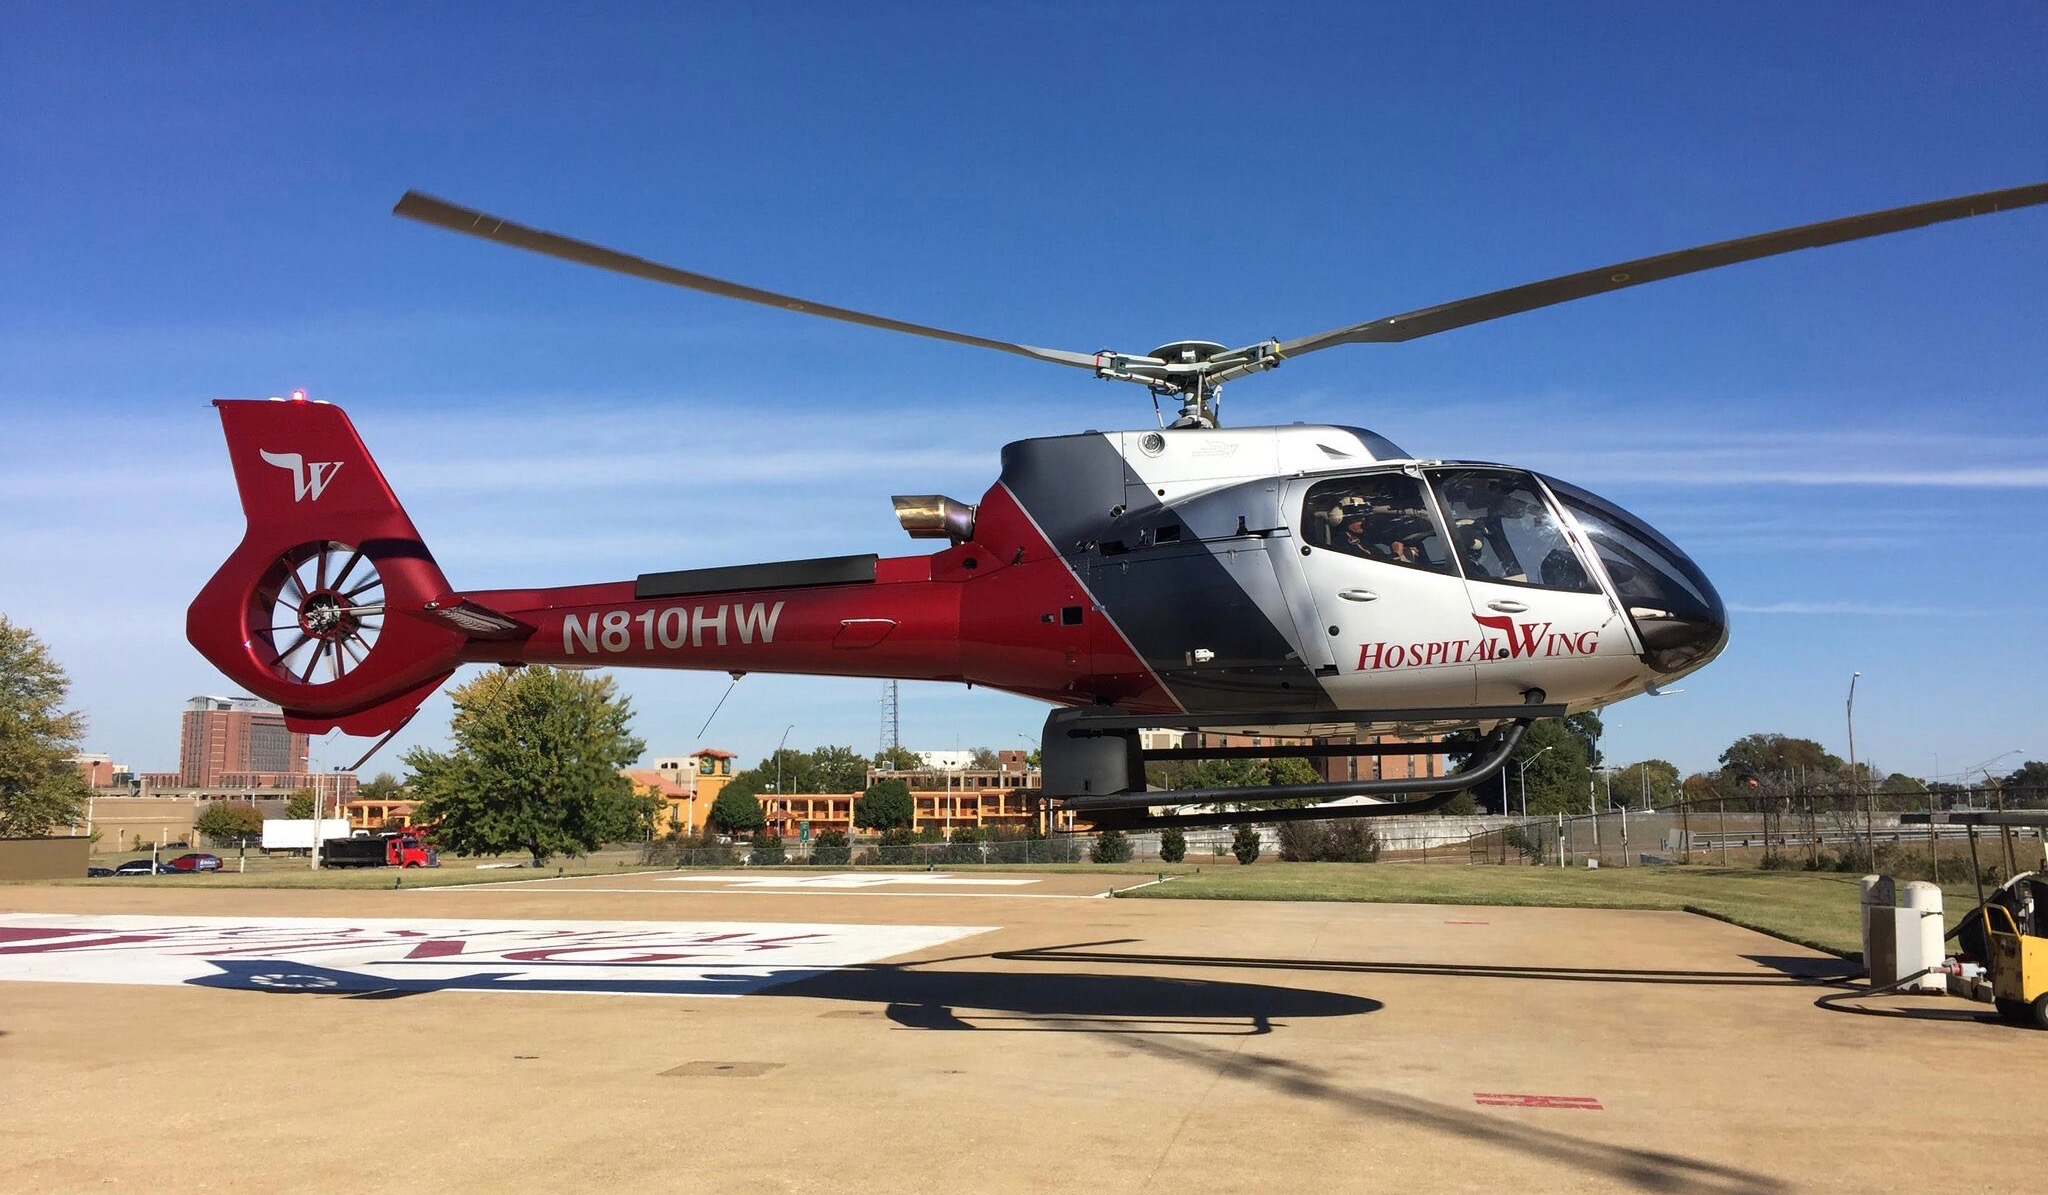 U.S. HEMS Operation to Eliminate Paperwork with Flightdocs